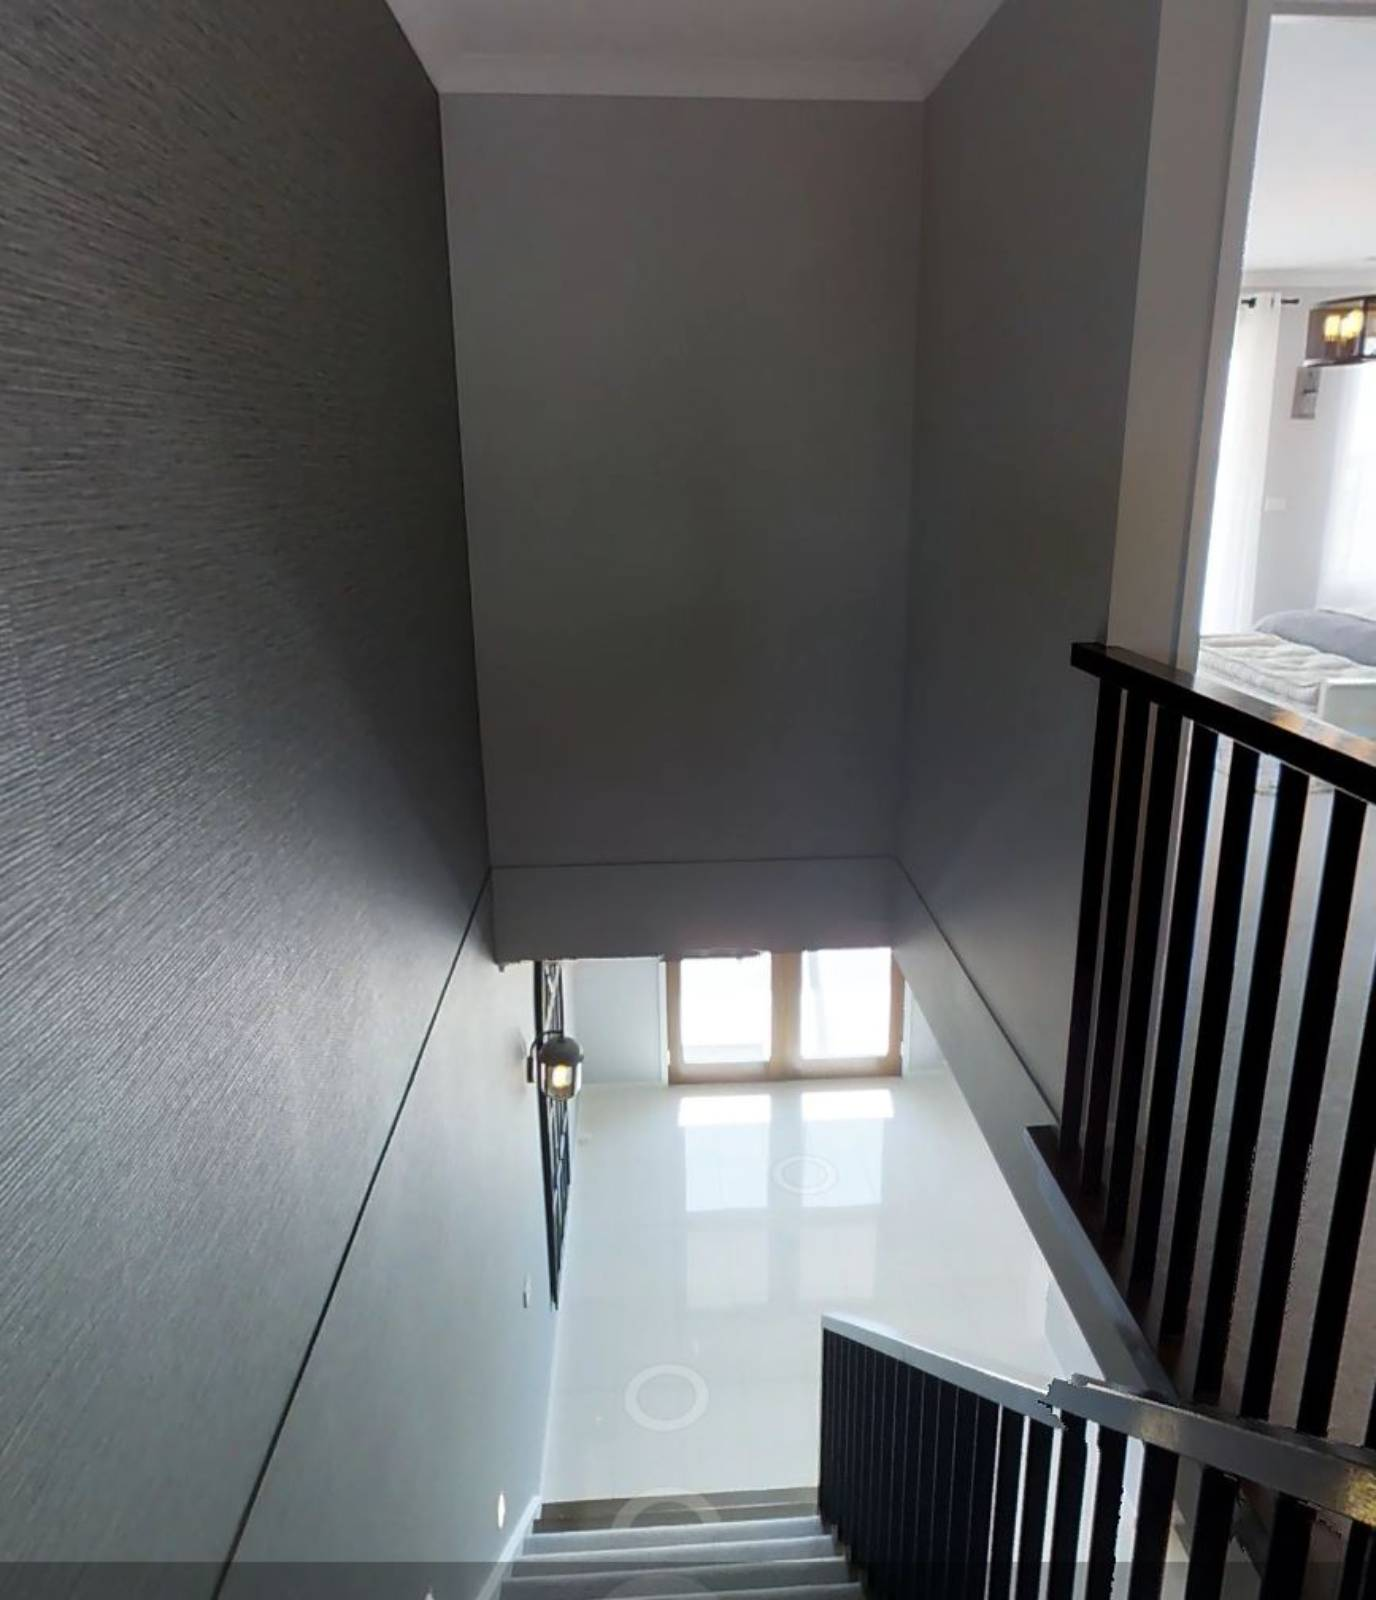 Cost to install chandelier in stairwell